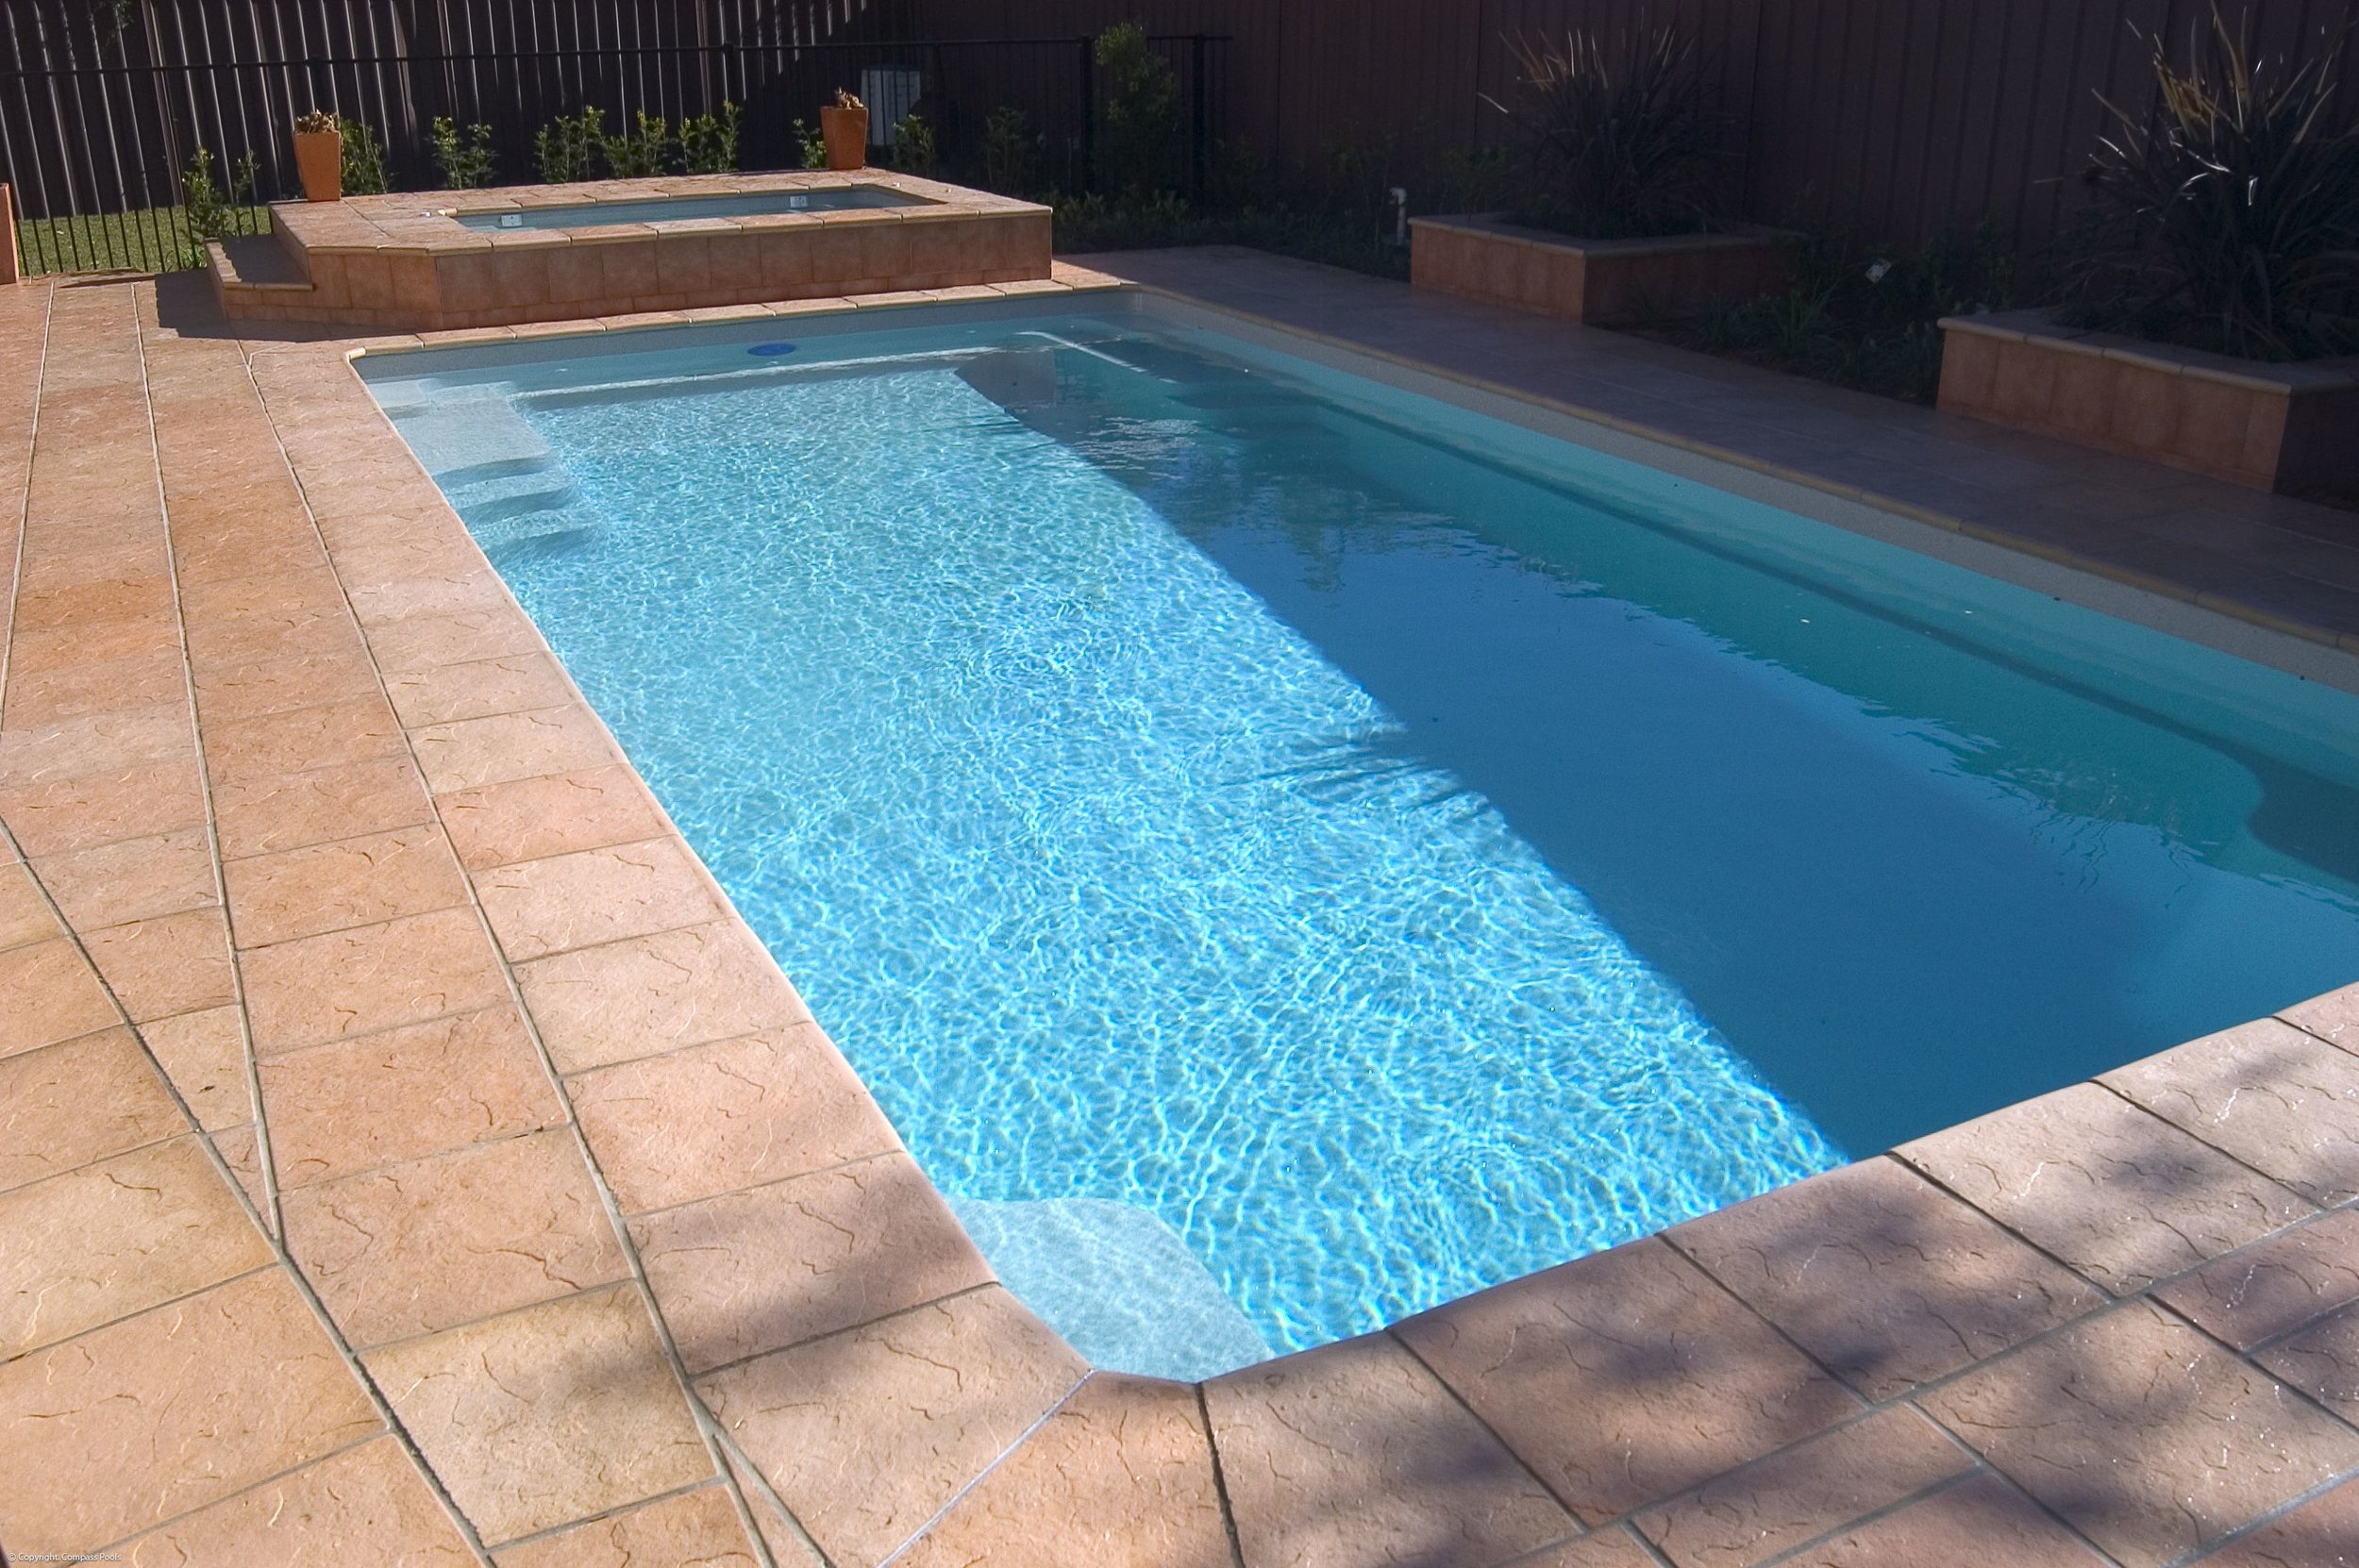 profile-pools-landscaping_cab4d1742a.jpg